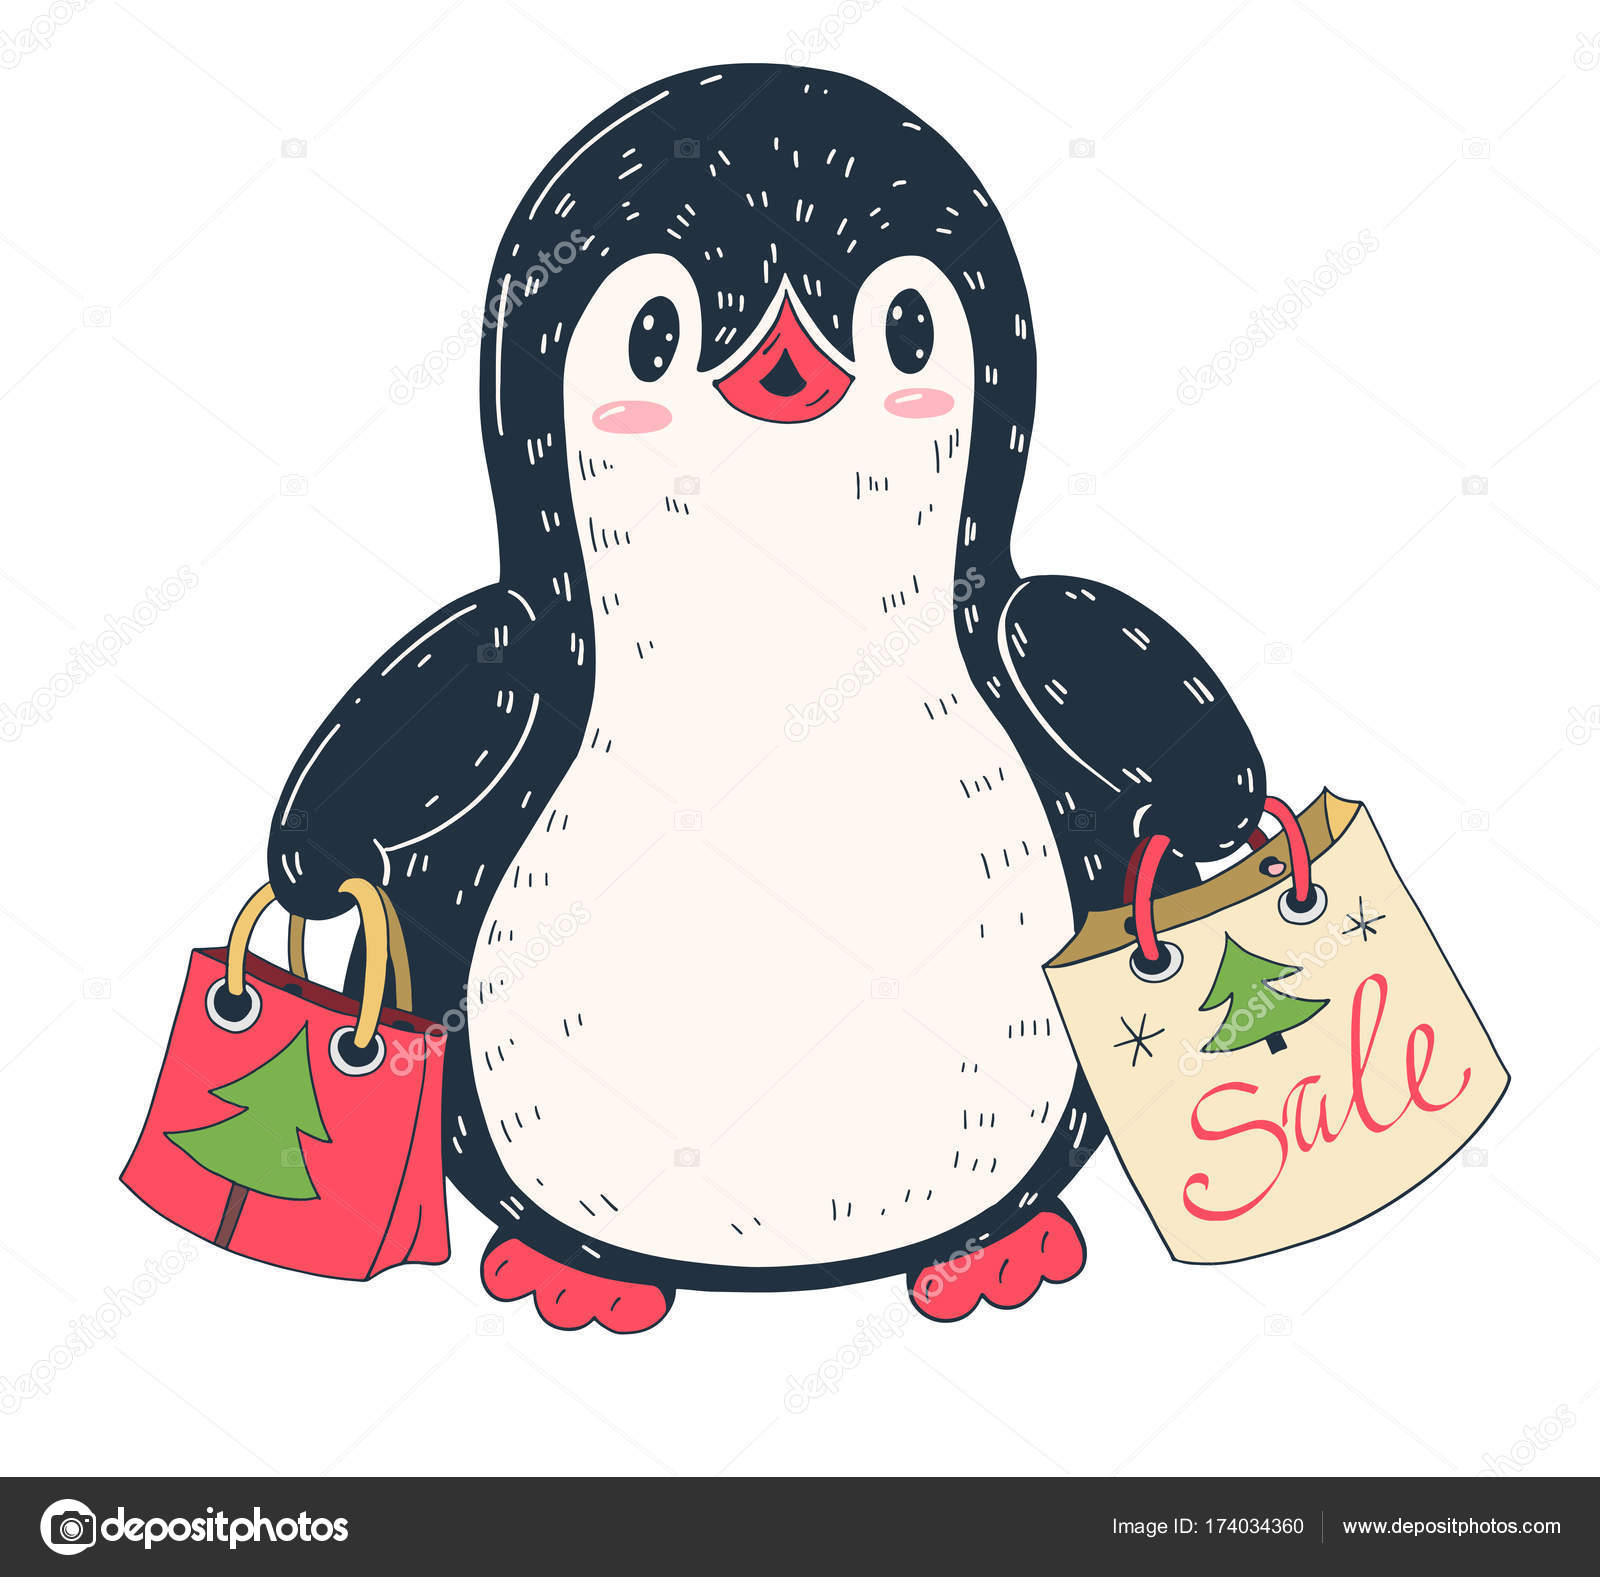 artoon penguin with Christmas gifts — Stock Vector © tiff20 #174034360